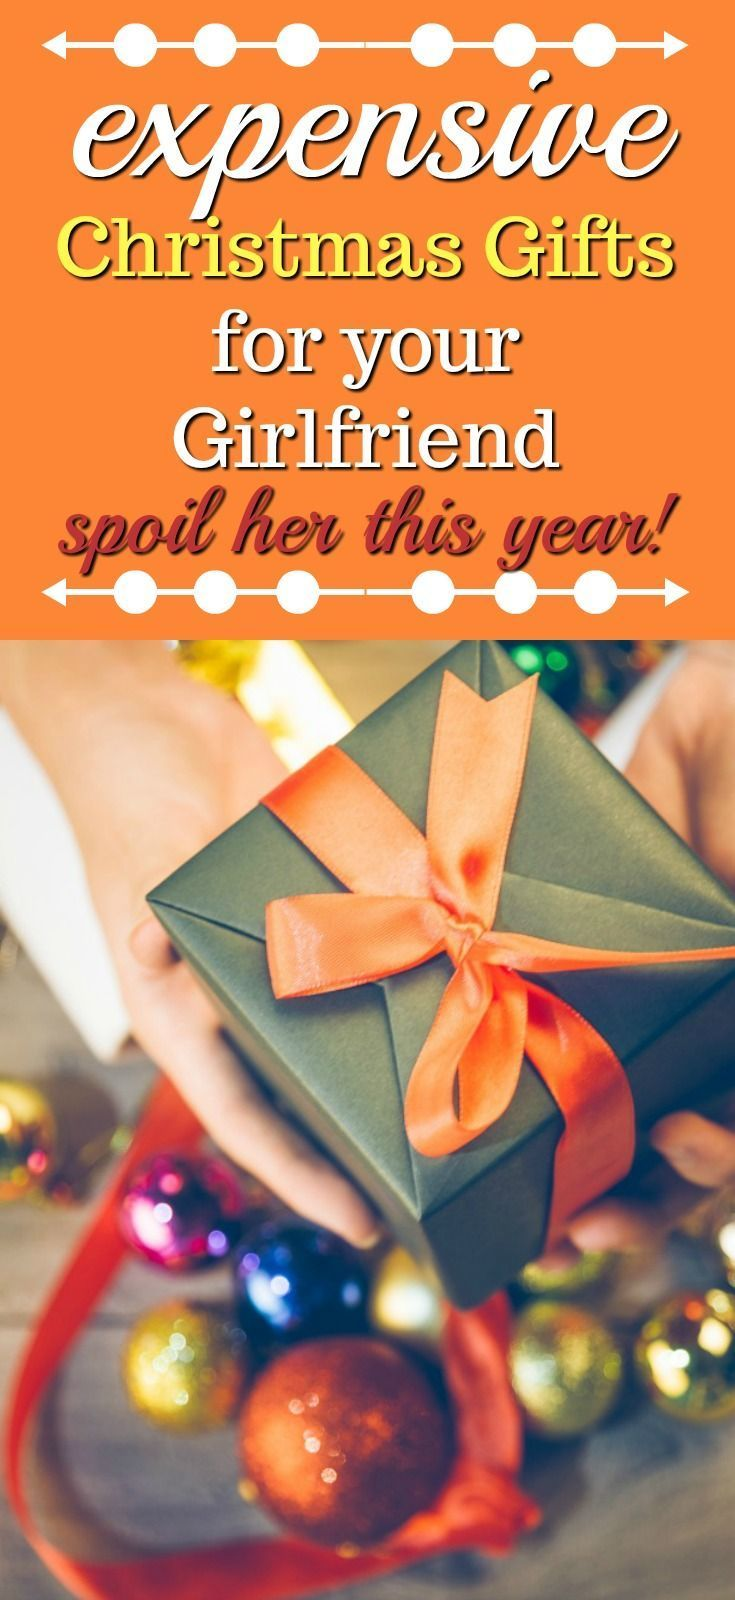 expensive christmas gifts for your girlfriend how to spoil your girlfriend for christmas girlfriend gift ideas for christmas holiday presents for my